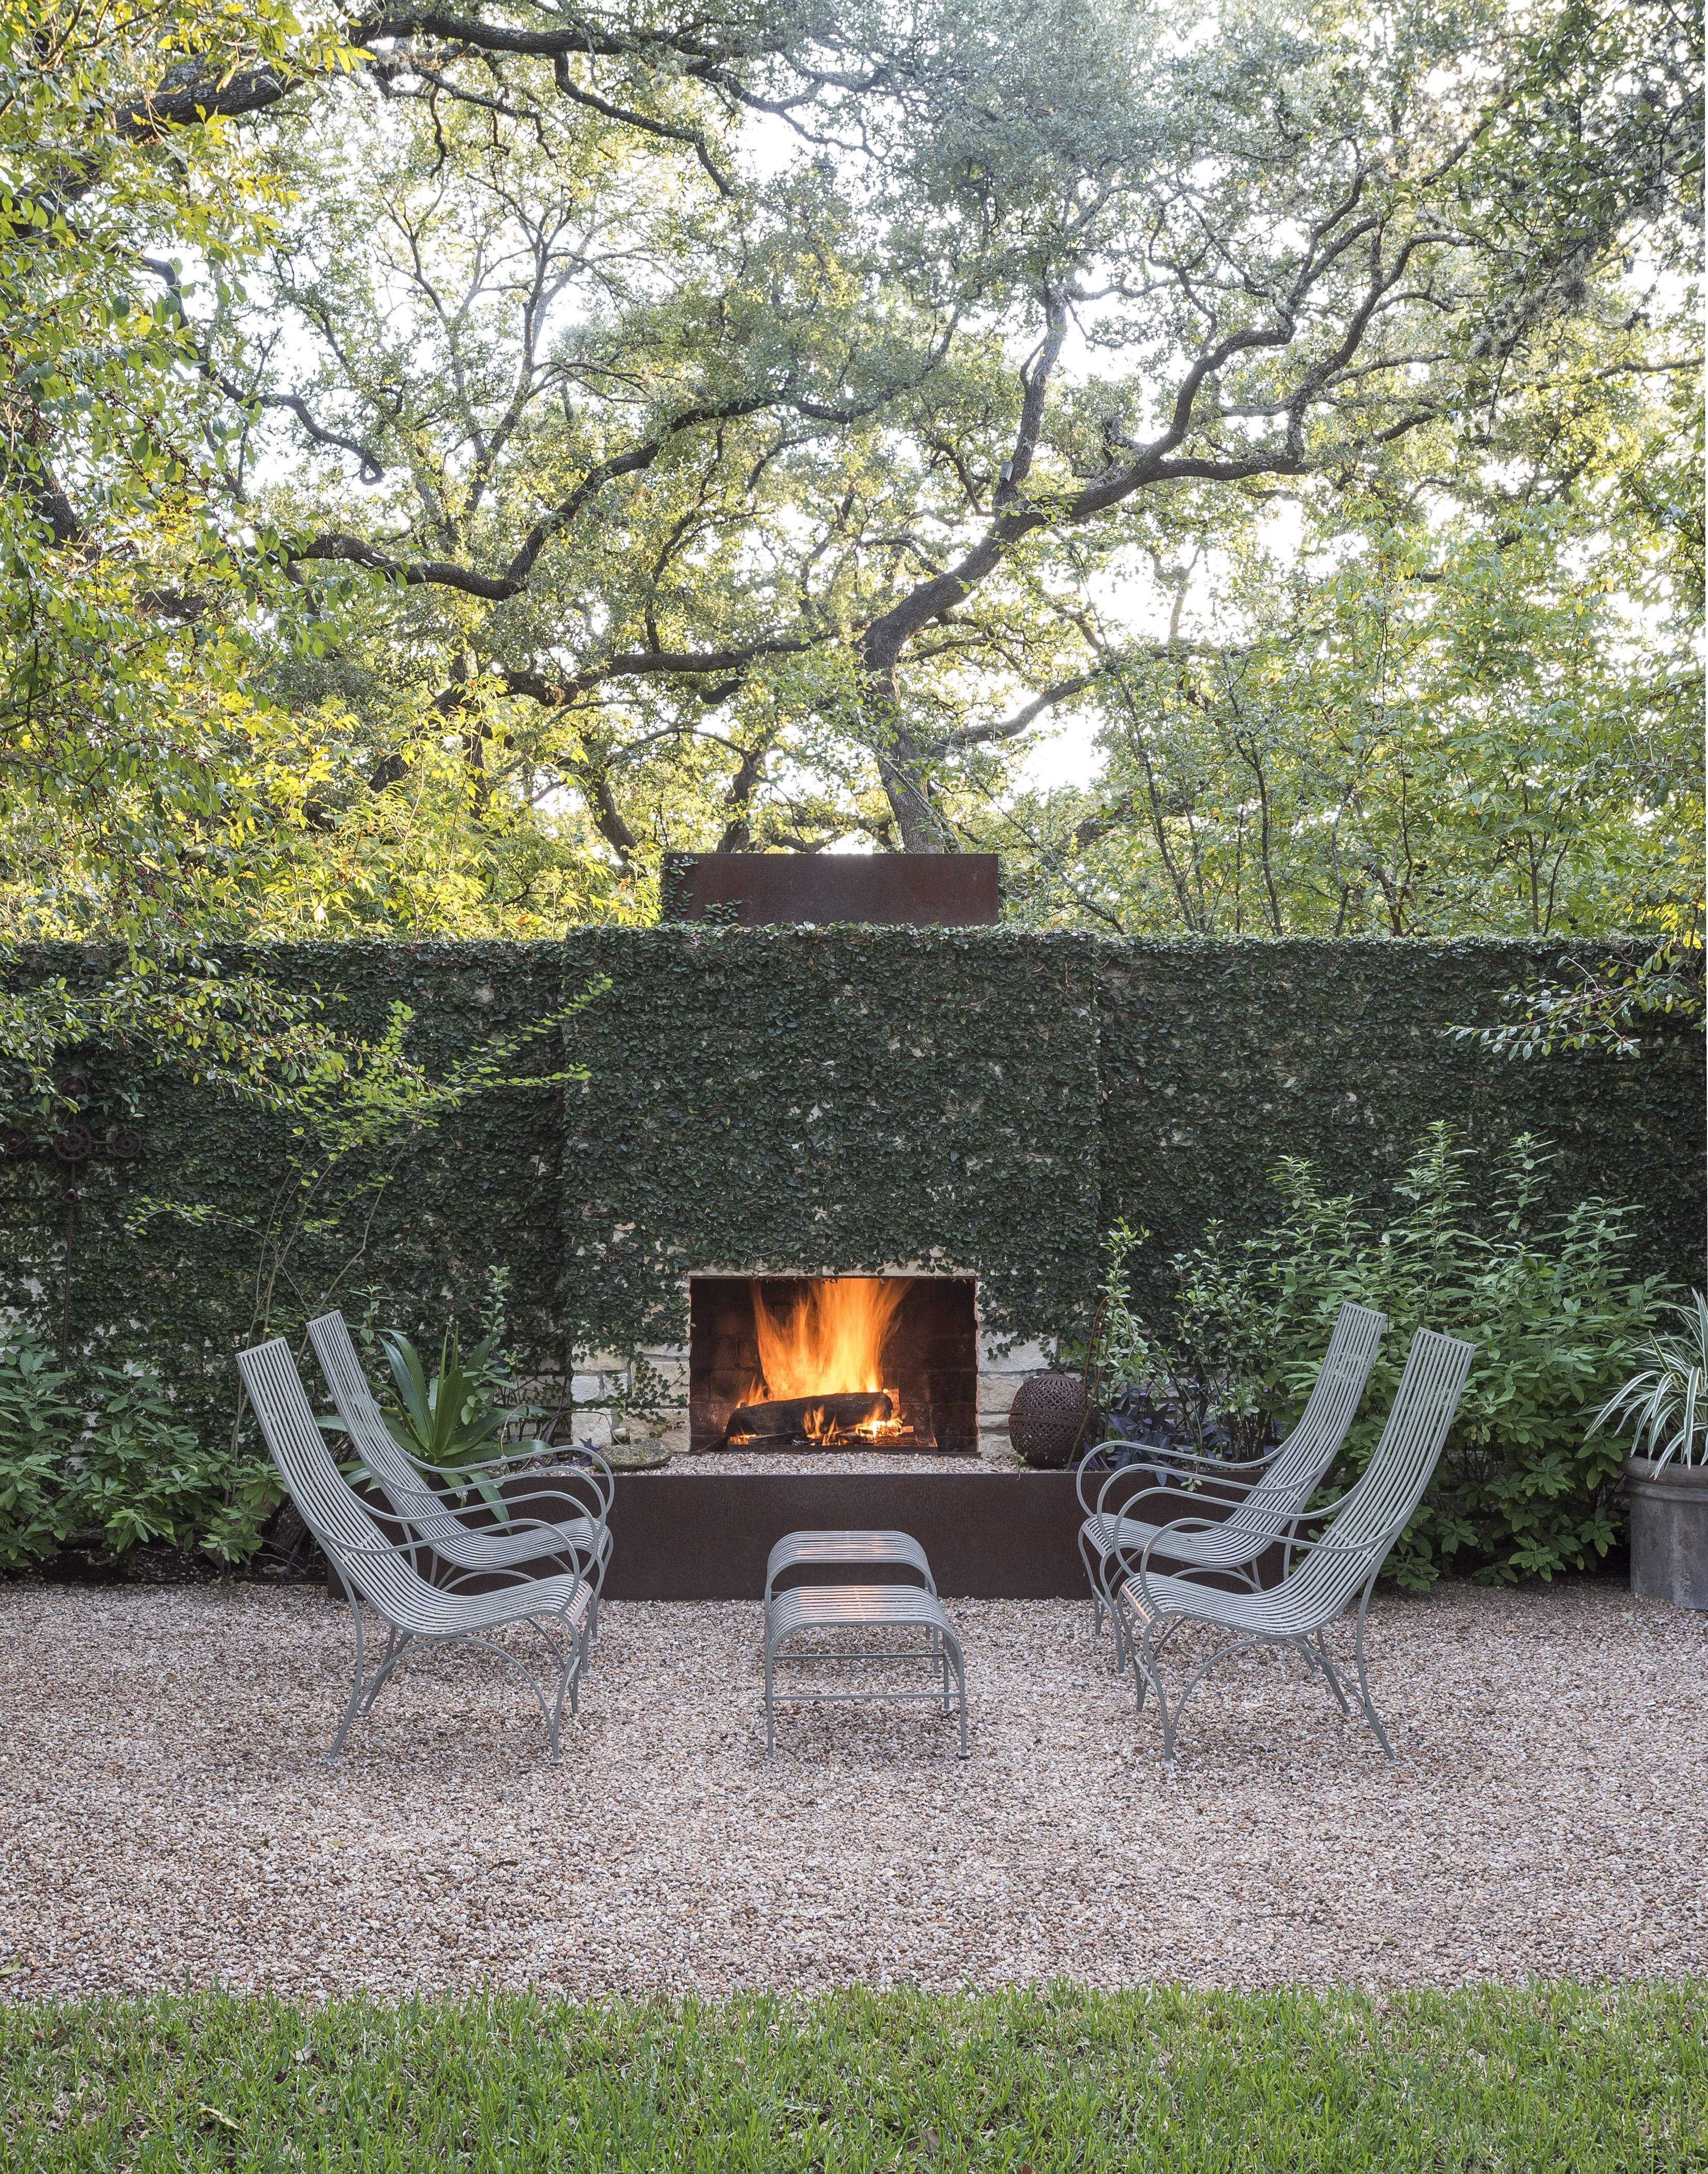 historic layered with mid-century modern (landscape design